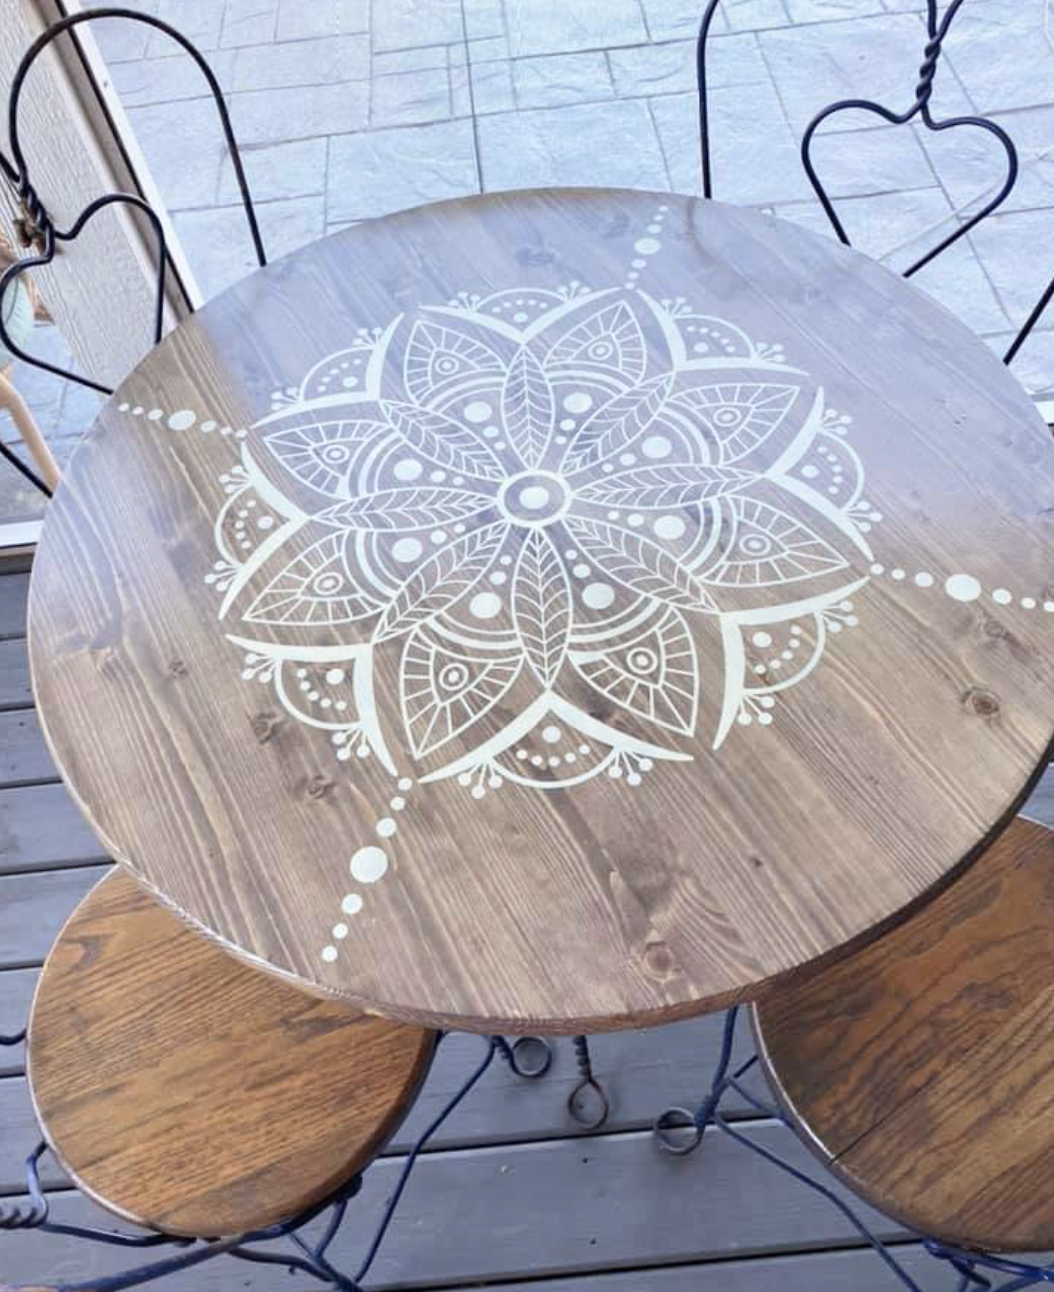 Porch bistro table with vinyl decal